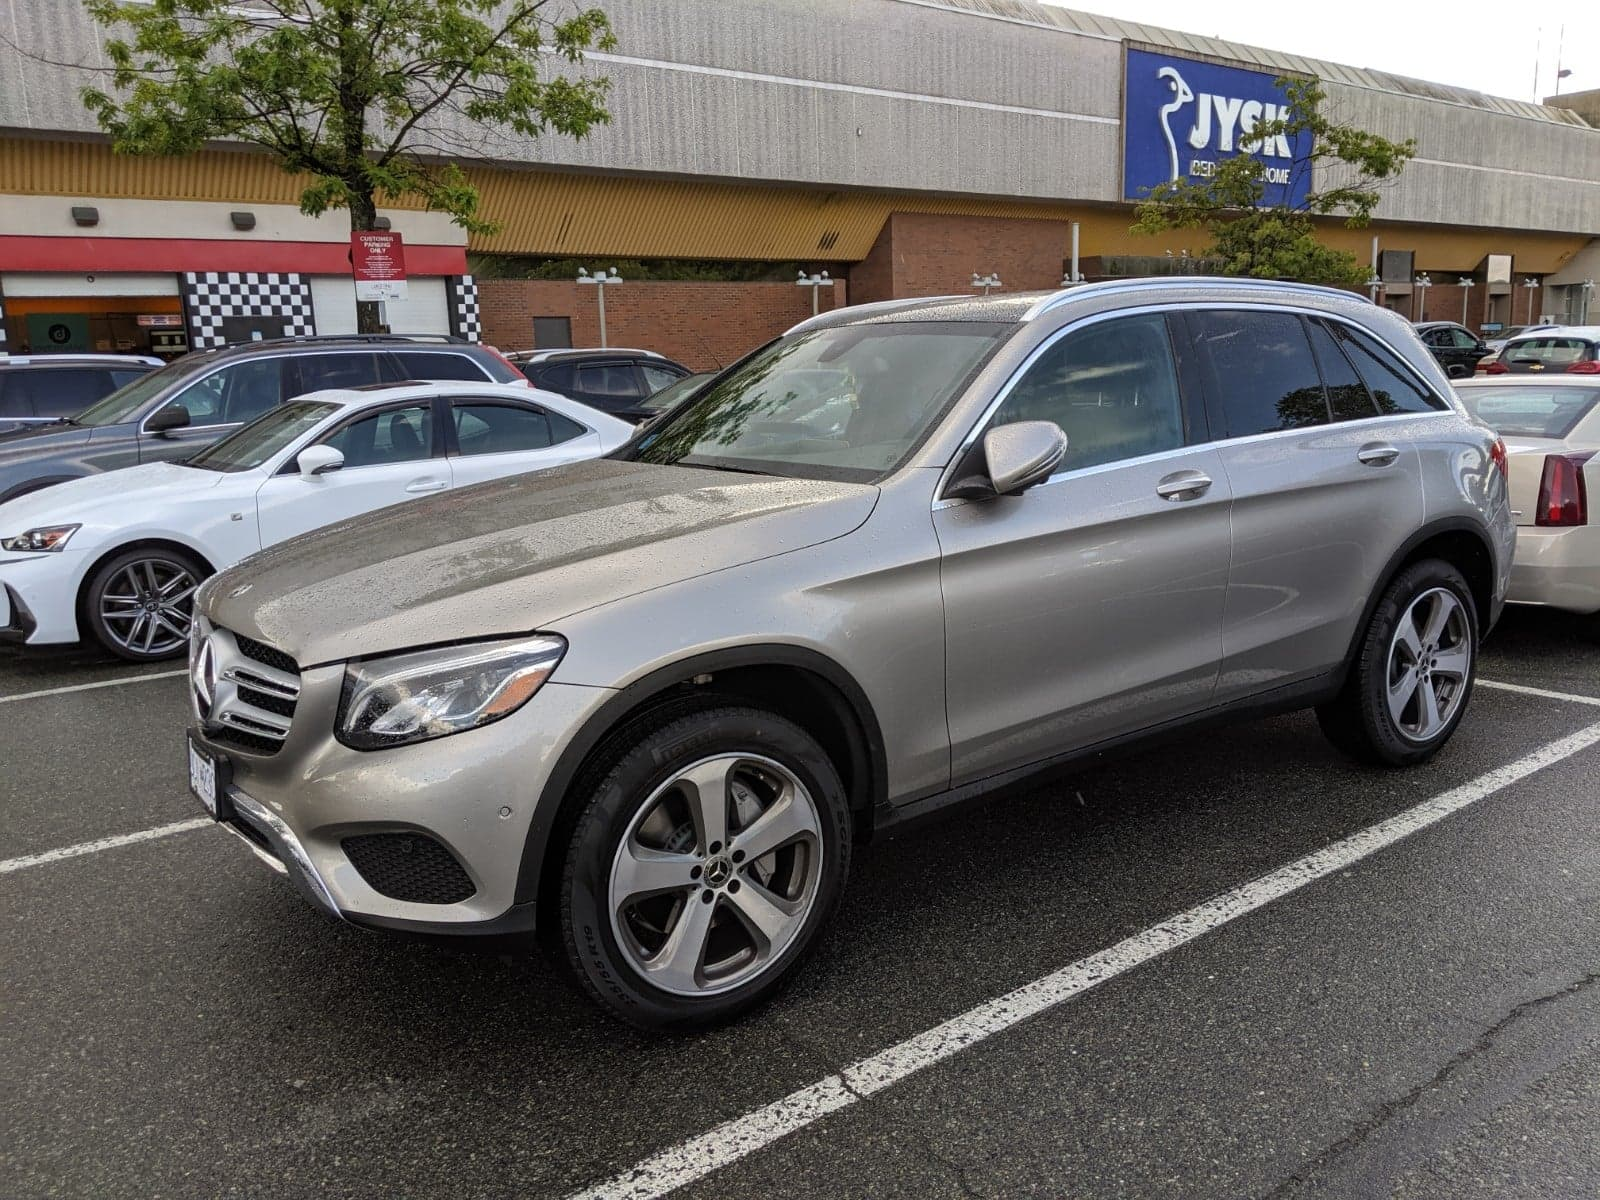 glc300 Graphite alloygator